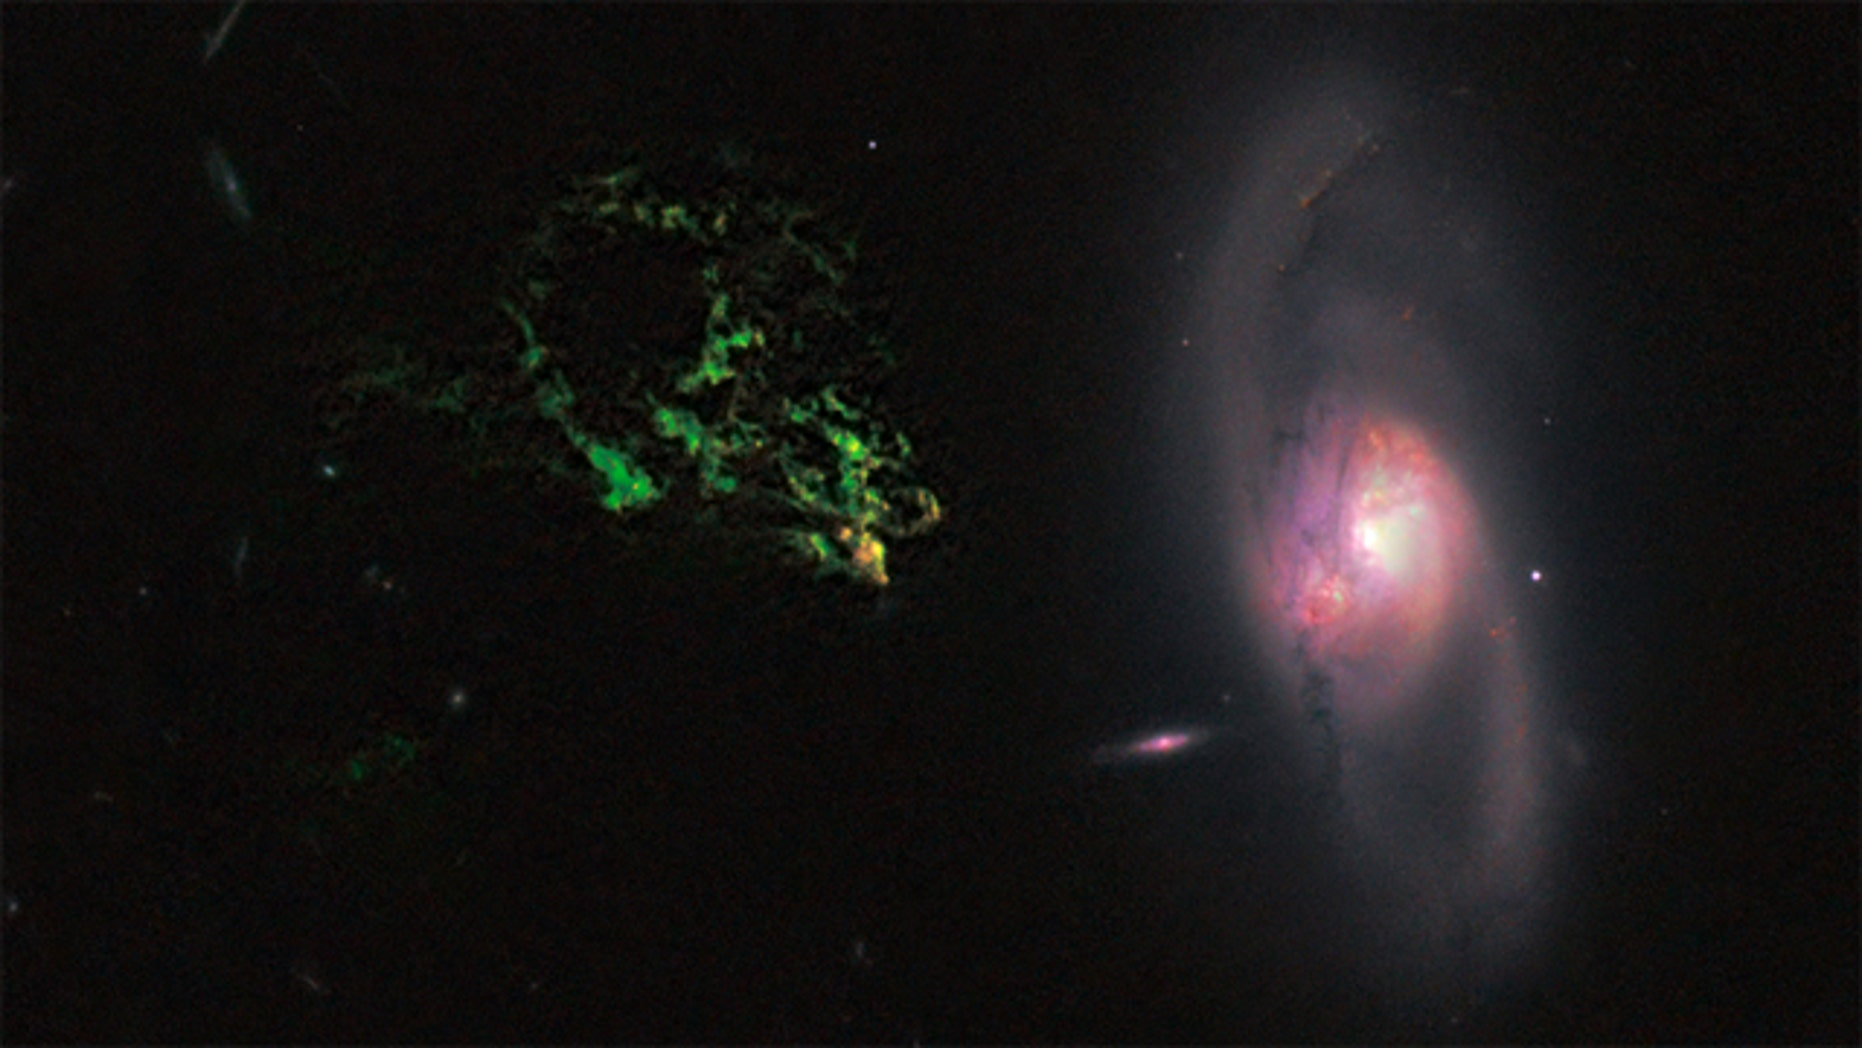 In this image by NASA's Hubble Space Telescope, an unusual, ghostly green blob of gas appears to float near a normal-looking spiral galaxy. The bizarre object, dubbed Hanny's Voorwerp (Hanny's Object in Dutch), is the only visible part of a 300,000-light-year-long streamer of gas stretching around the galaxy, called IC 2497.